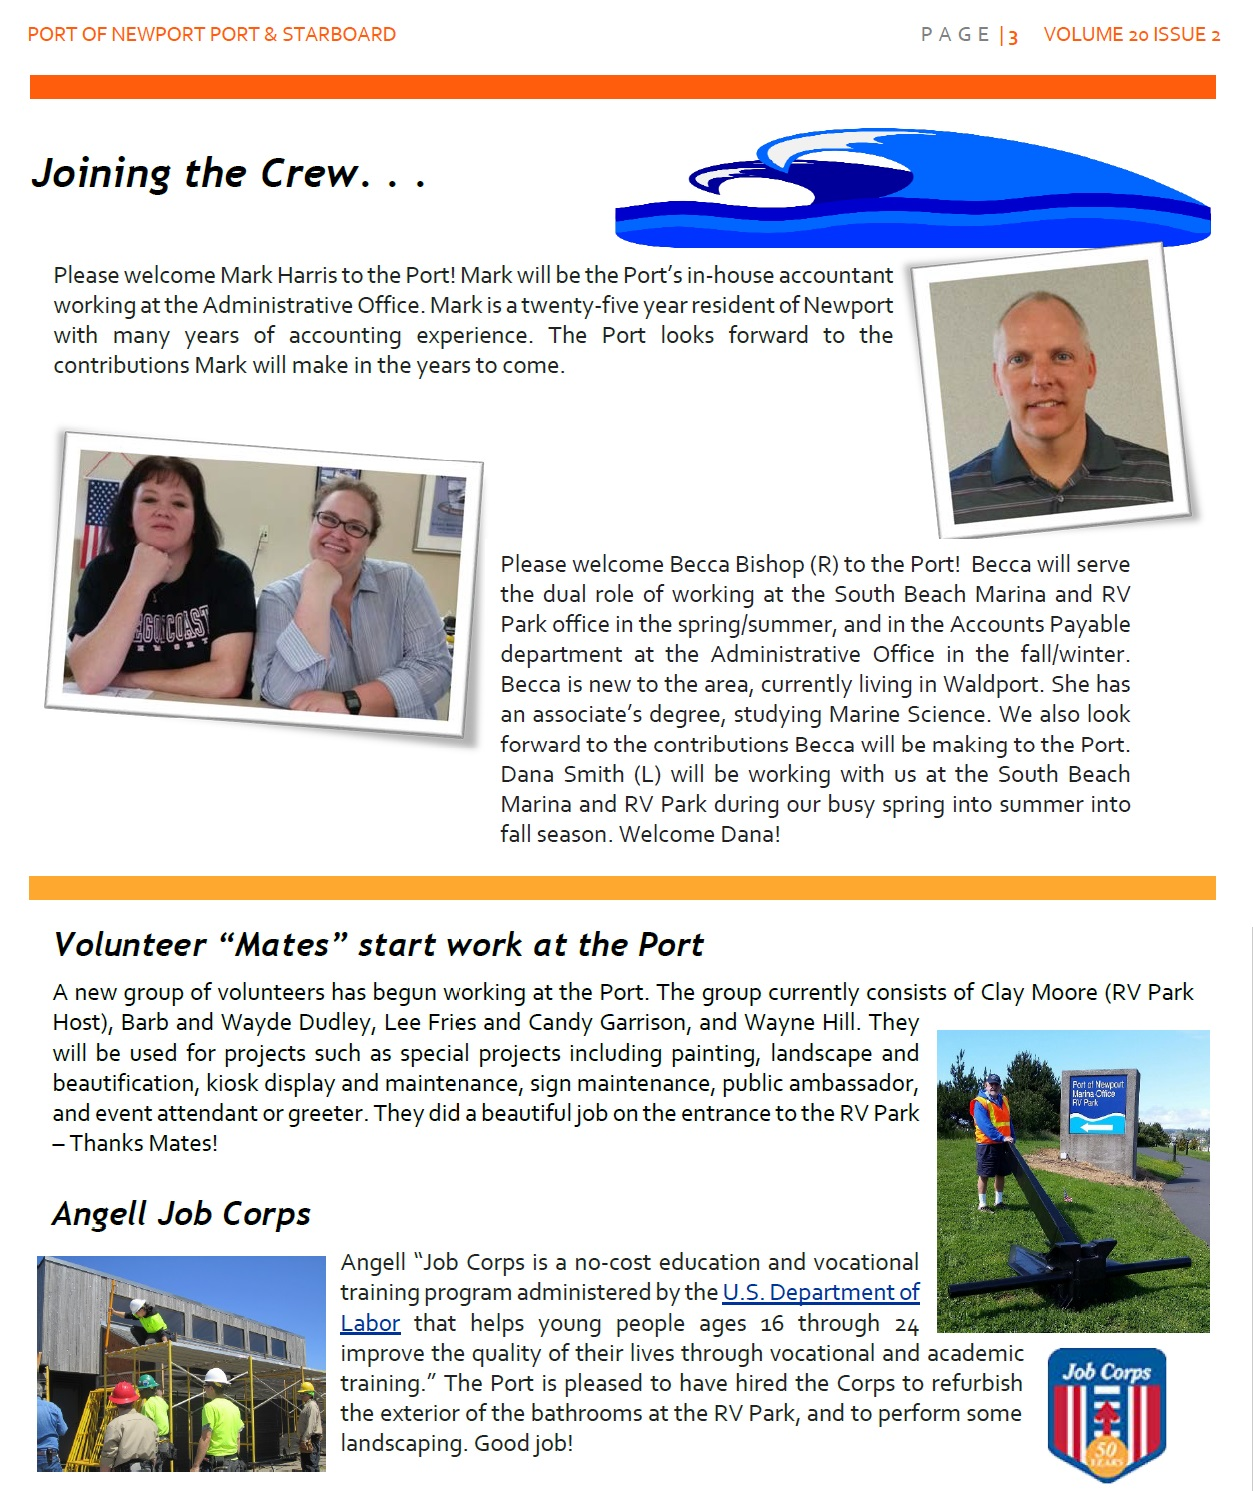 Jun2016 - Port of Newport - Port & Starboard Newsletter Volume 20 Issue 2 online edition 3